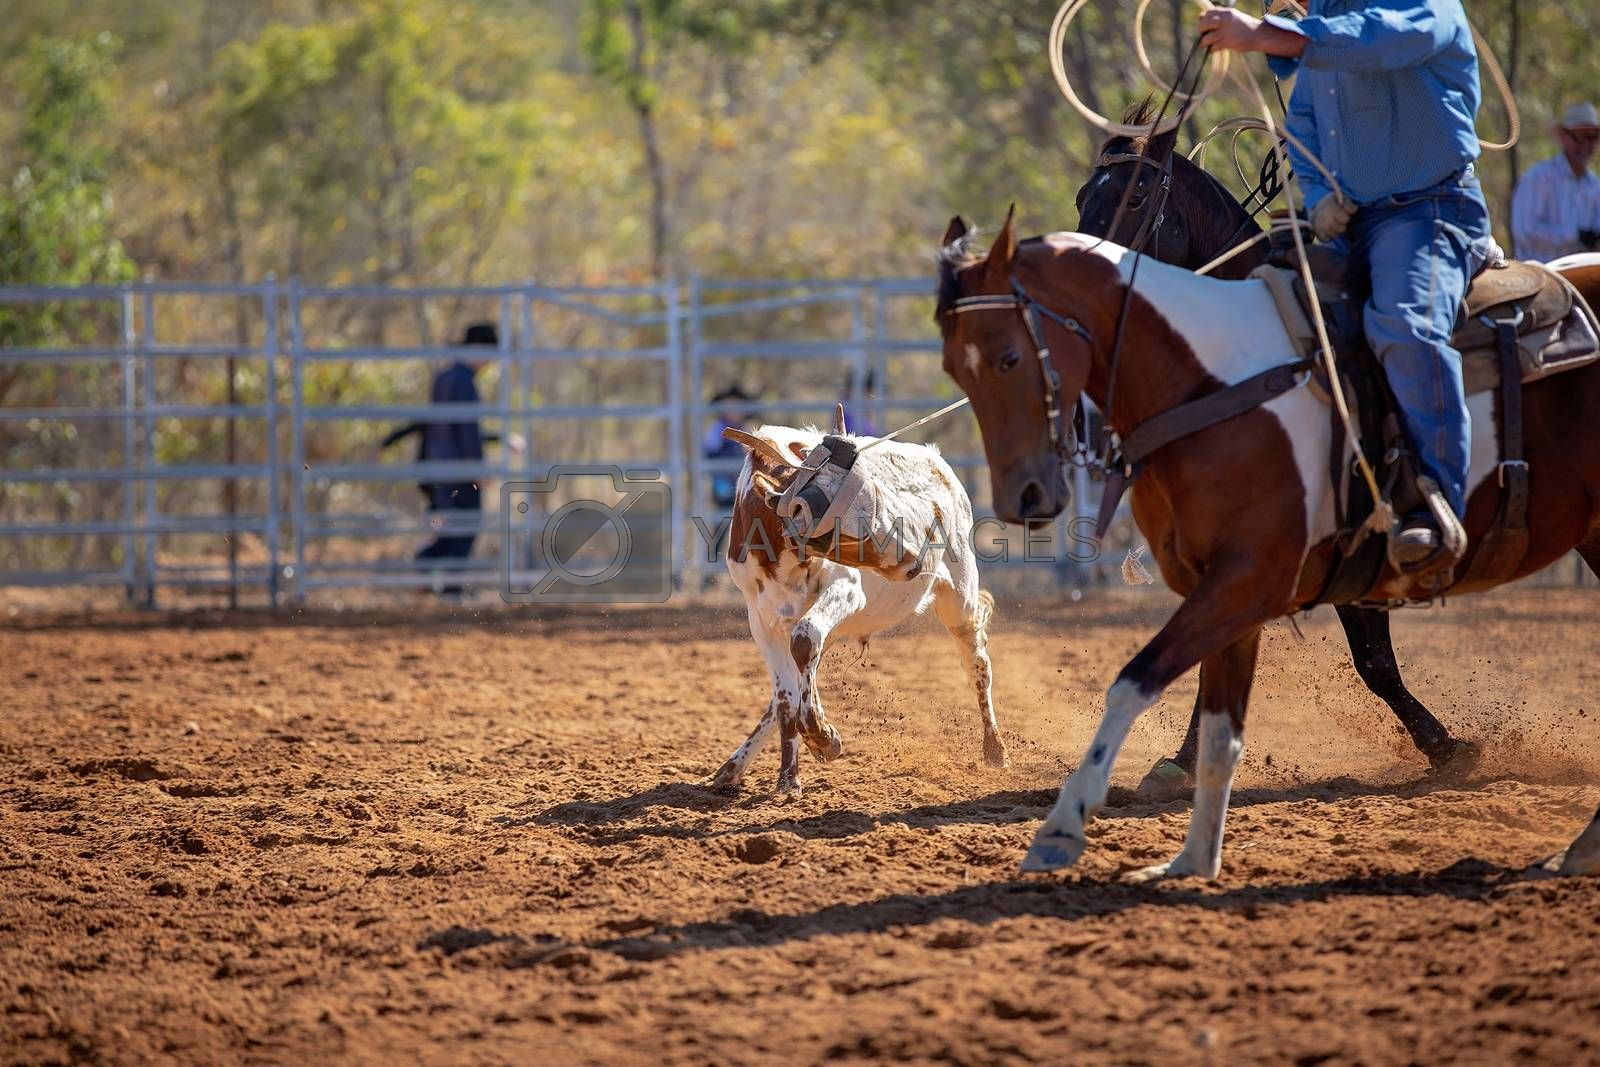 Calf being lassoed during competition at an Australian country rodeo